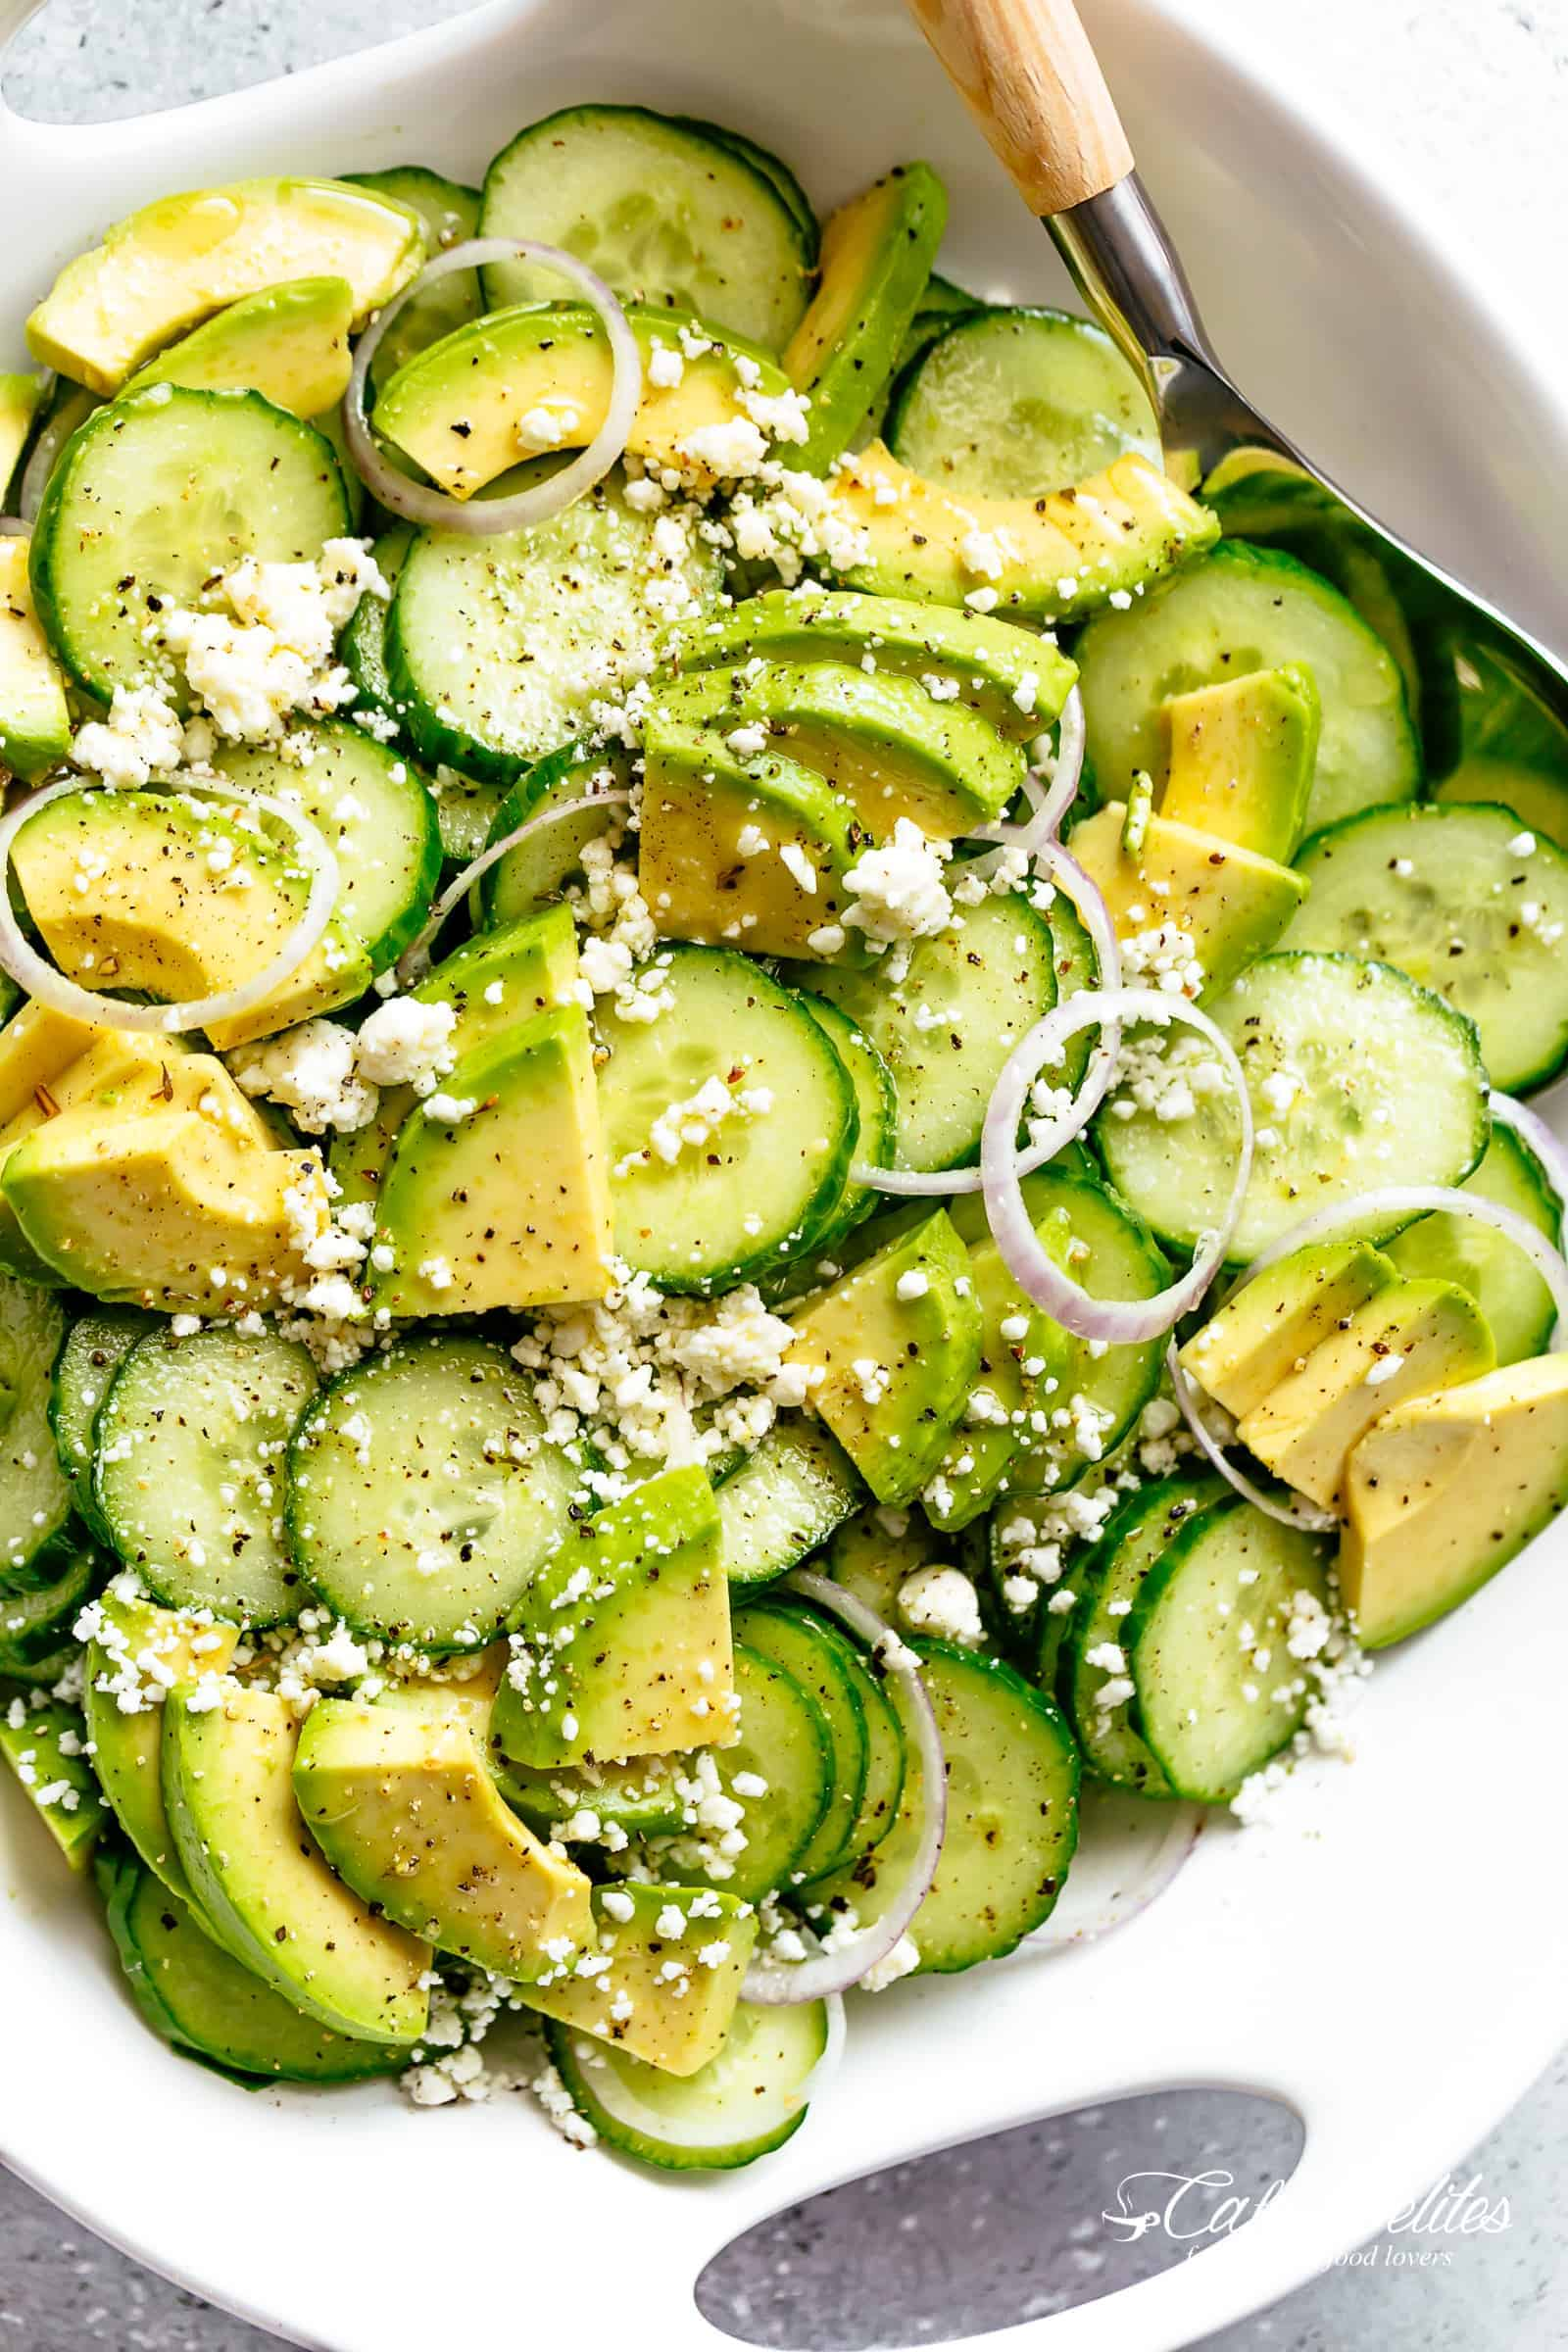 Avocado Feta Cucumber Salad with a delicious Greek inspired salad dressing or vinaigrette! The best side salad for any main meal. | cafedelites.com